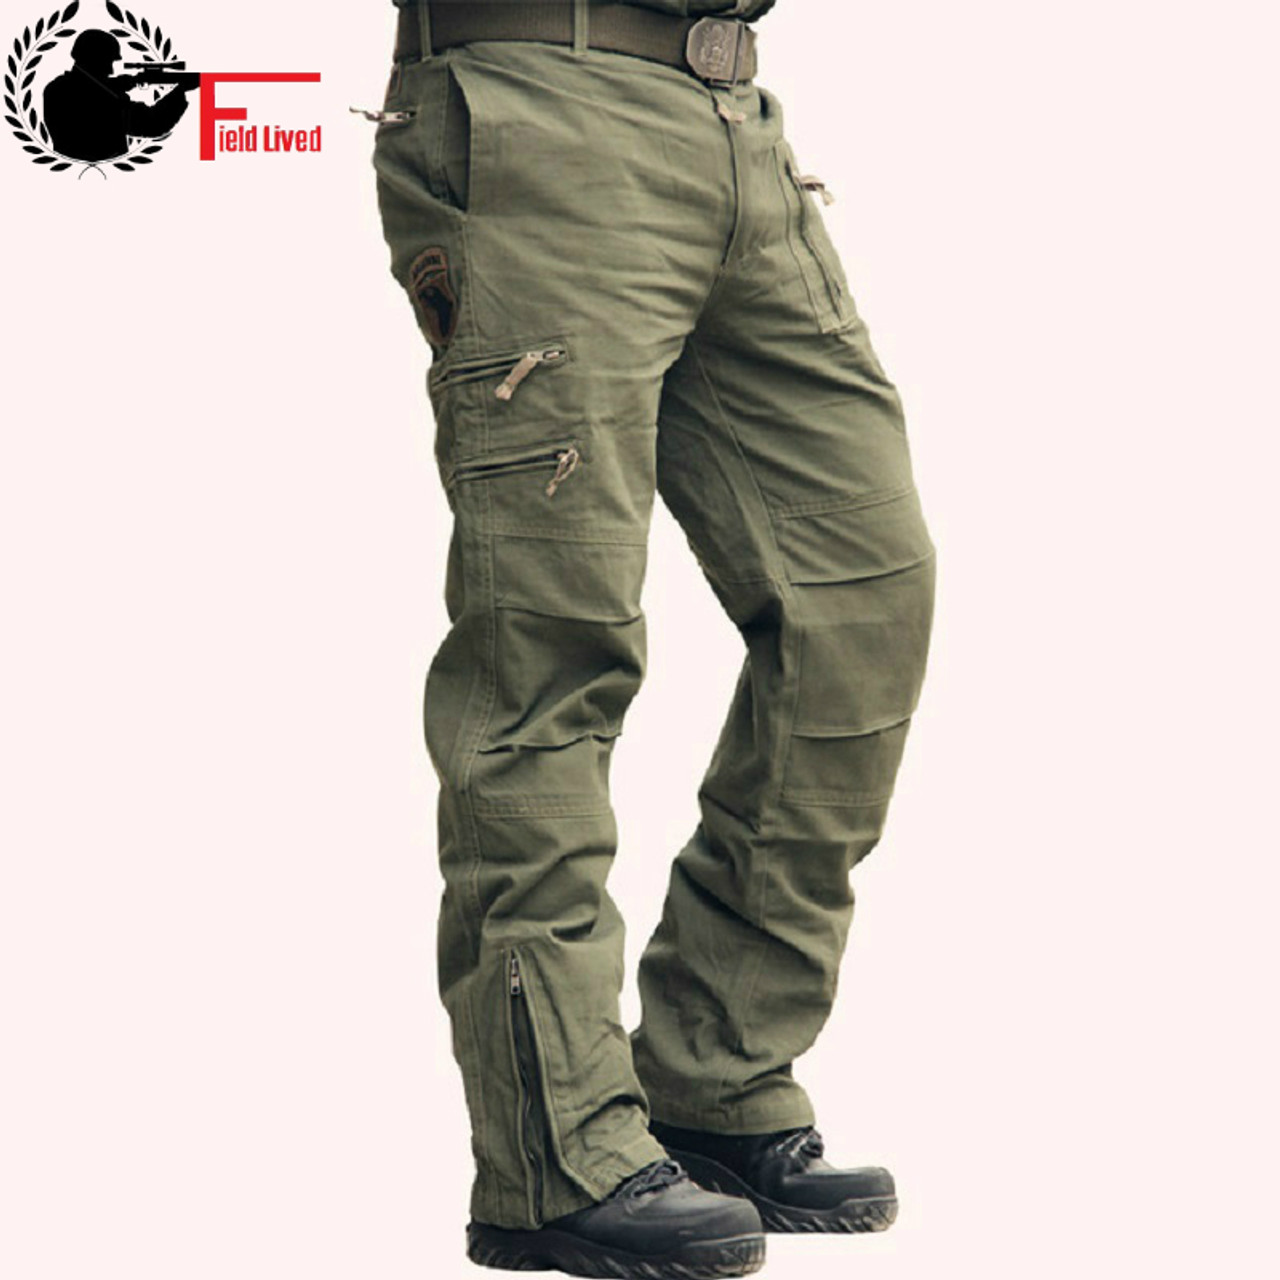 e4d1278cd24 Tactical Pants Male Camo Jogger Casual Plus Size Cotton Trousers Multi  Pocket Military Style Army Camouflage ...